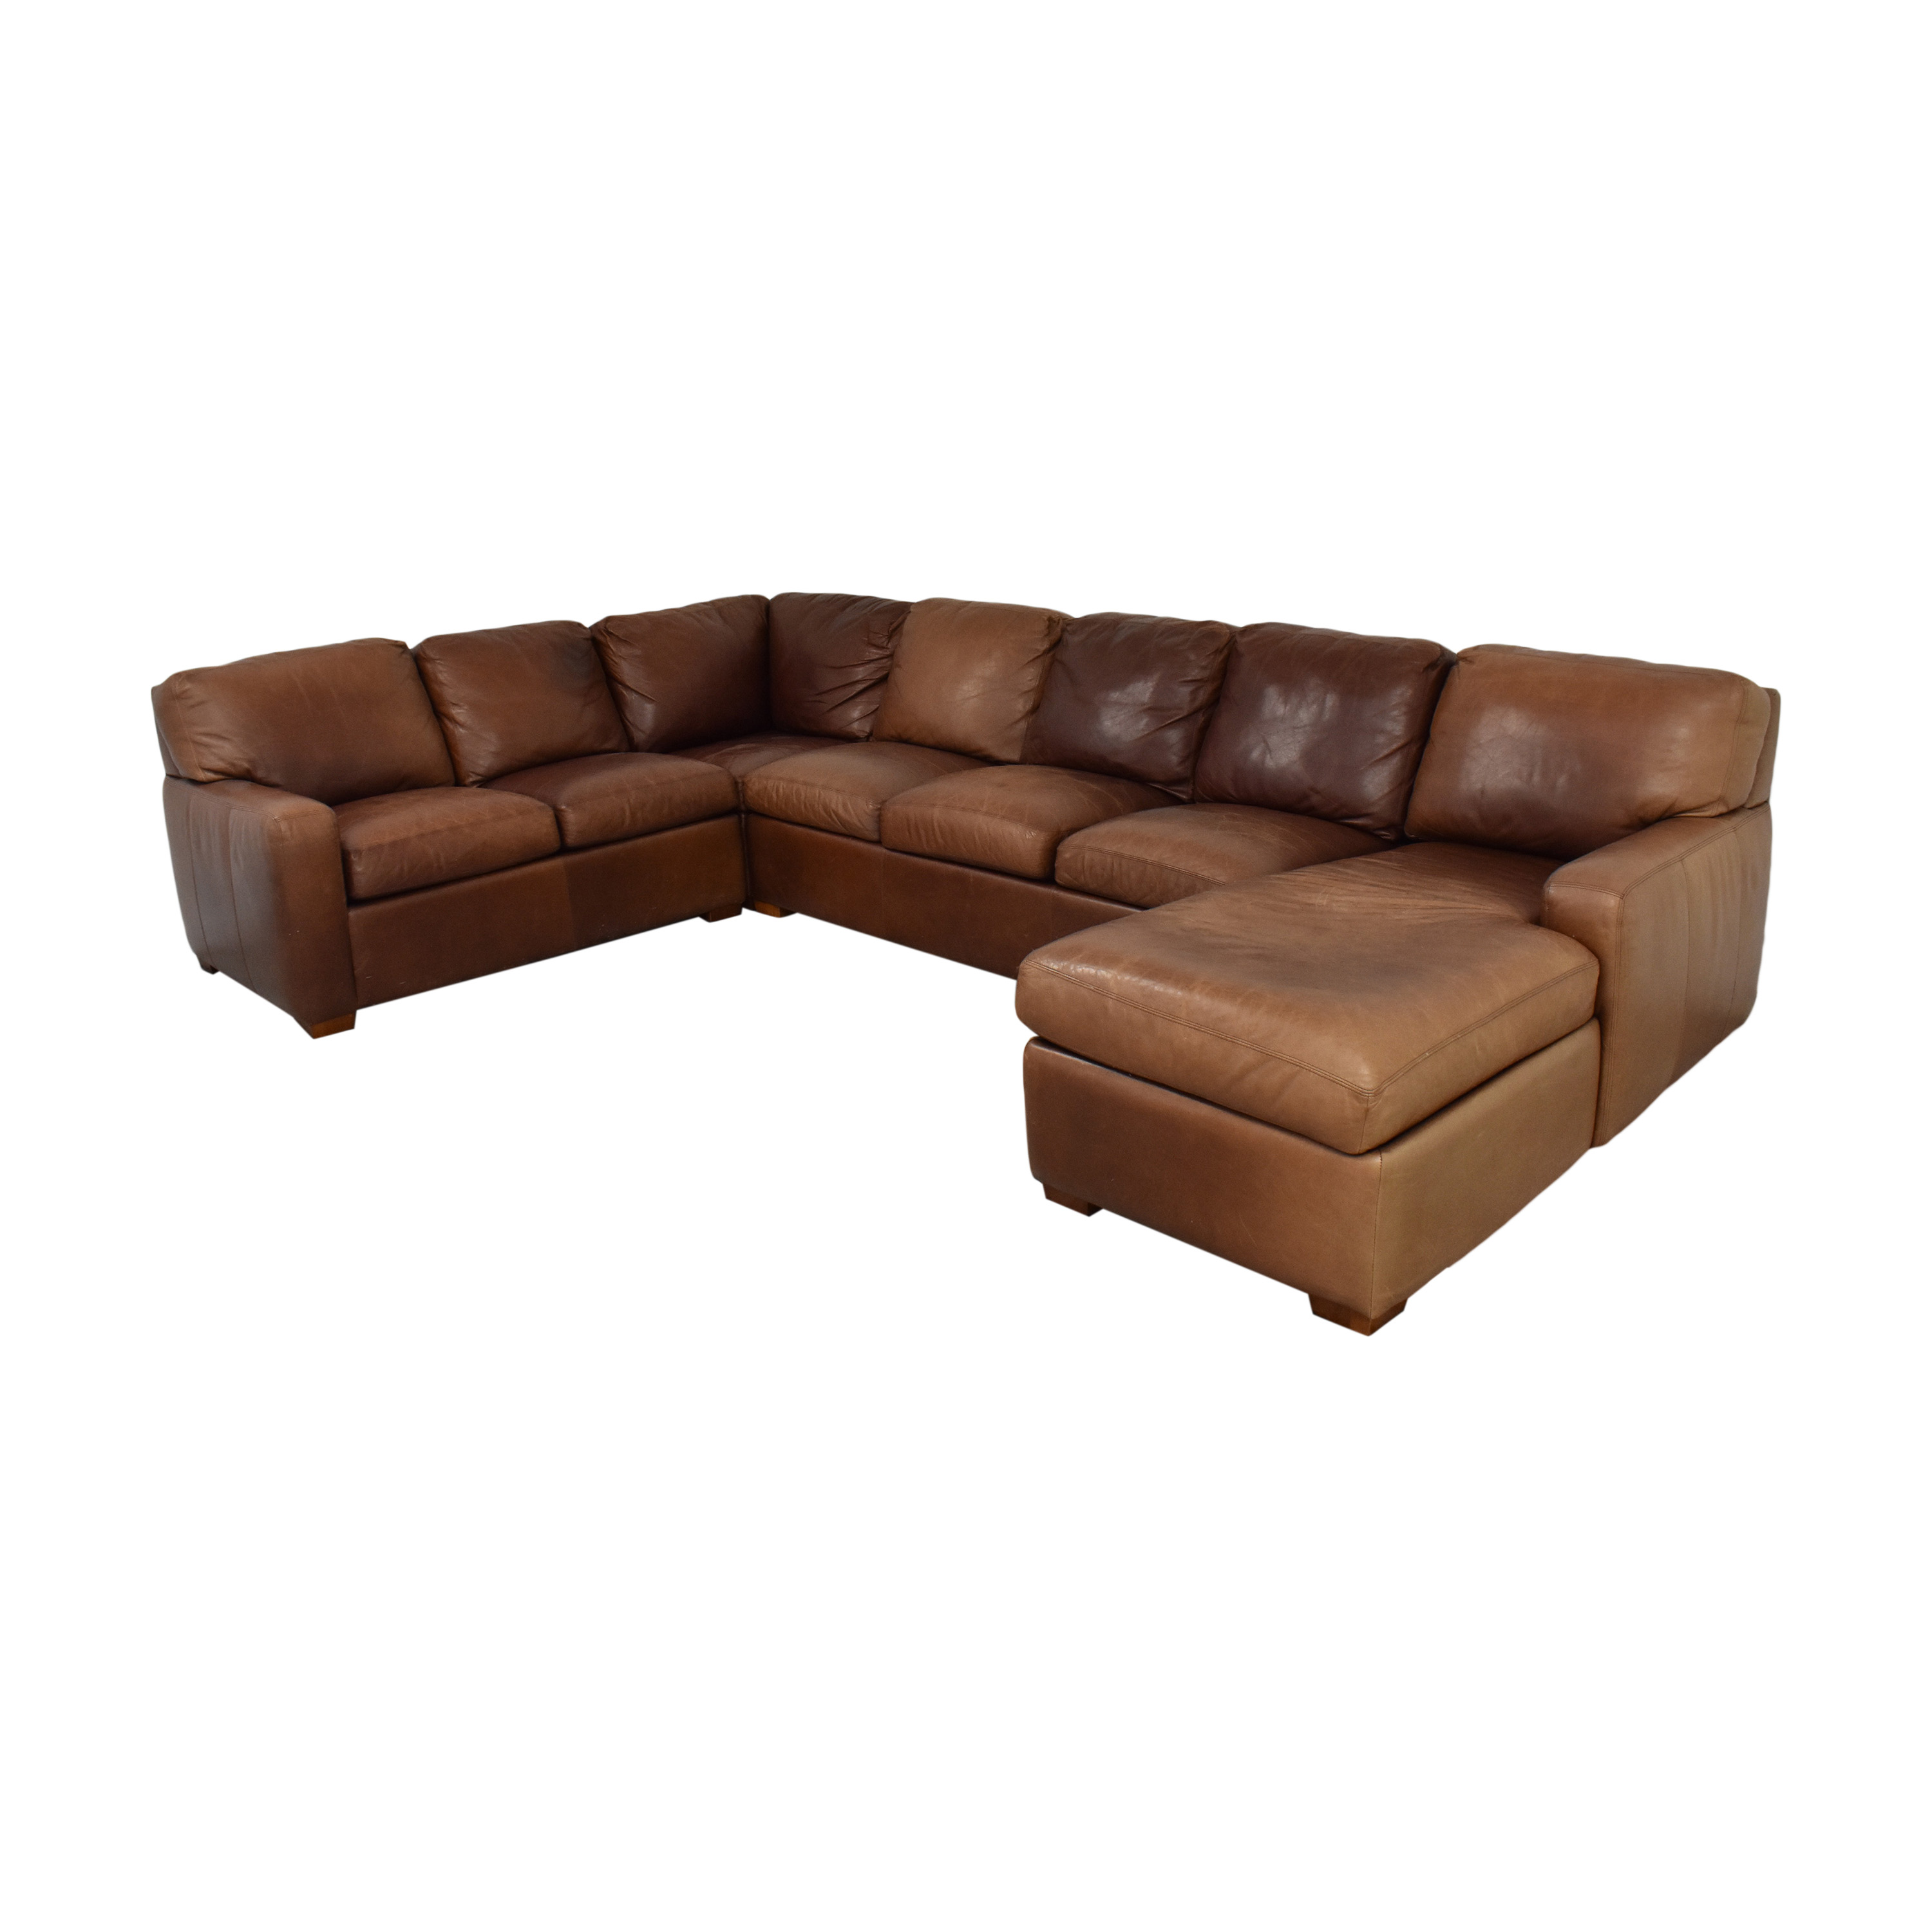 American Leather American Leather Danford Sectional Sofa price